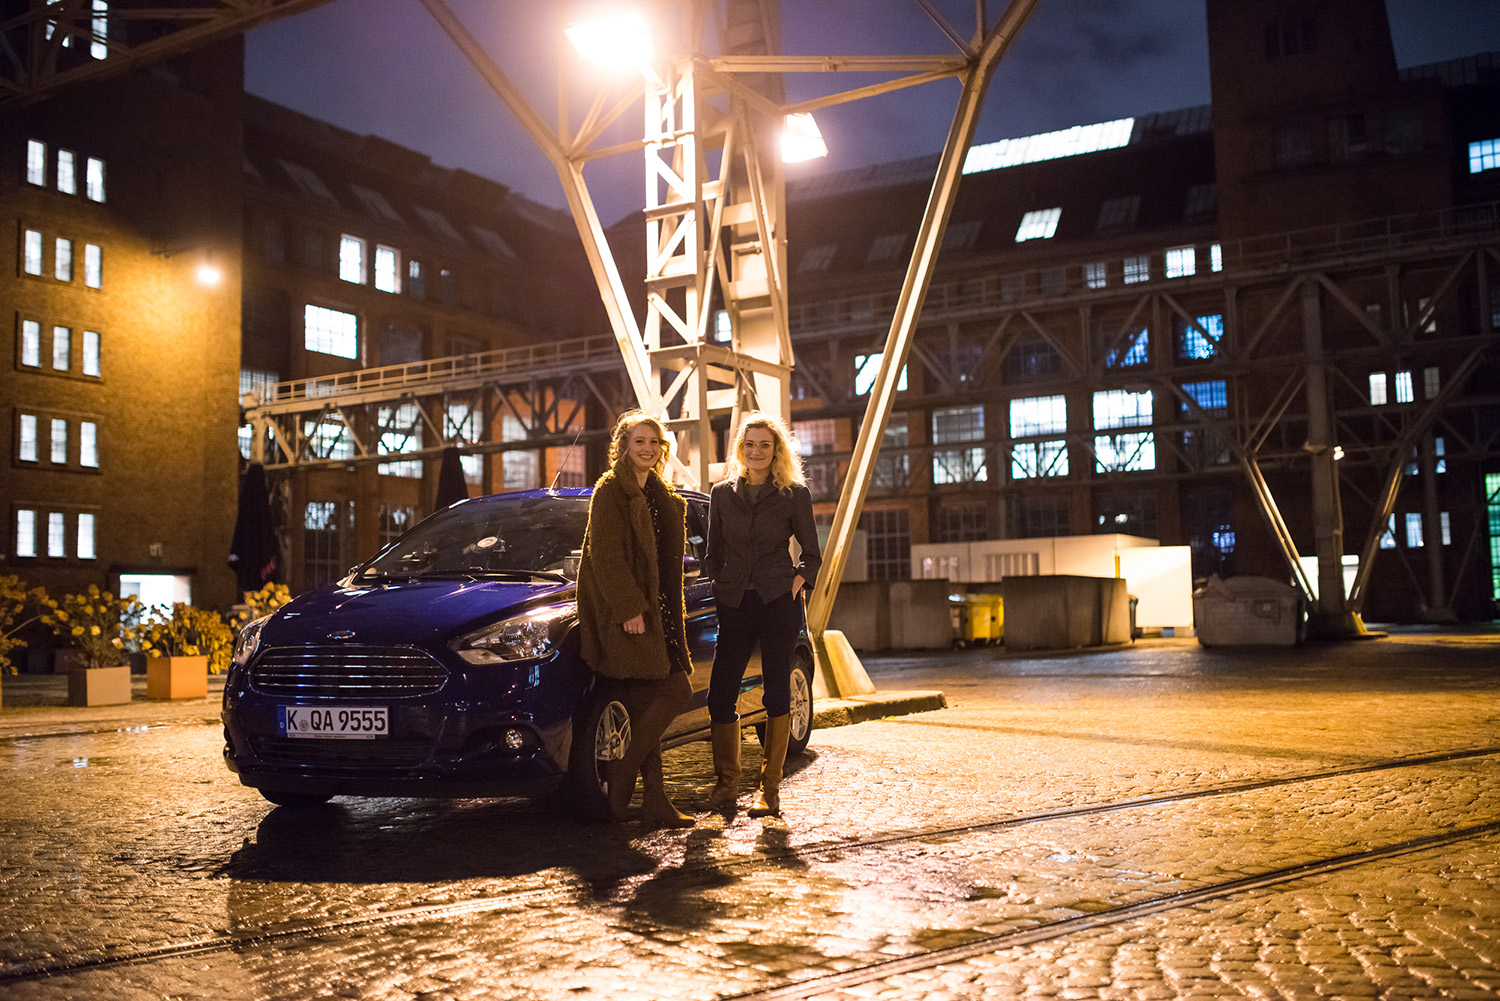 Auto bei Nacht, blau, Paleo, Ernährung, Essen, Interview, Ford Ka+, Test, City Auto, Lifestyleblog, Berlin, Advanceyourstyle